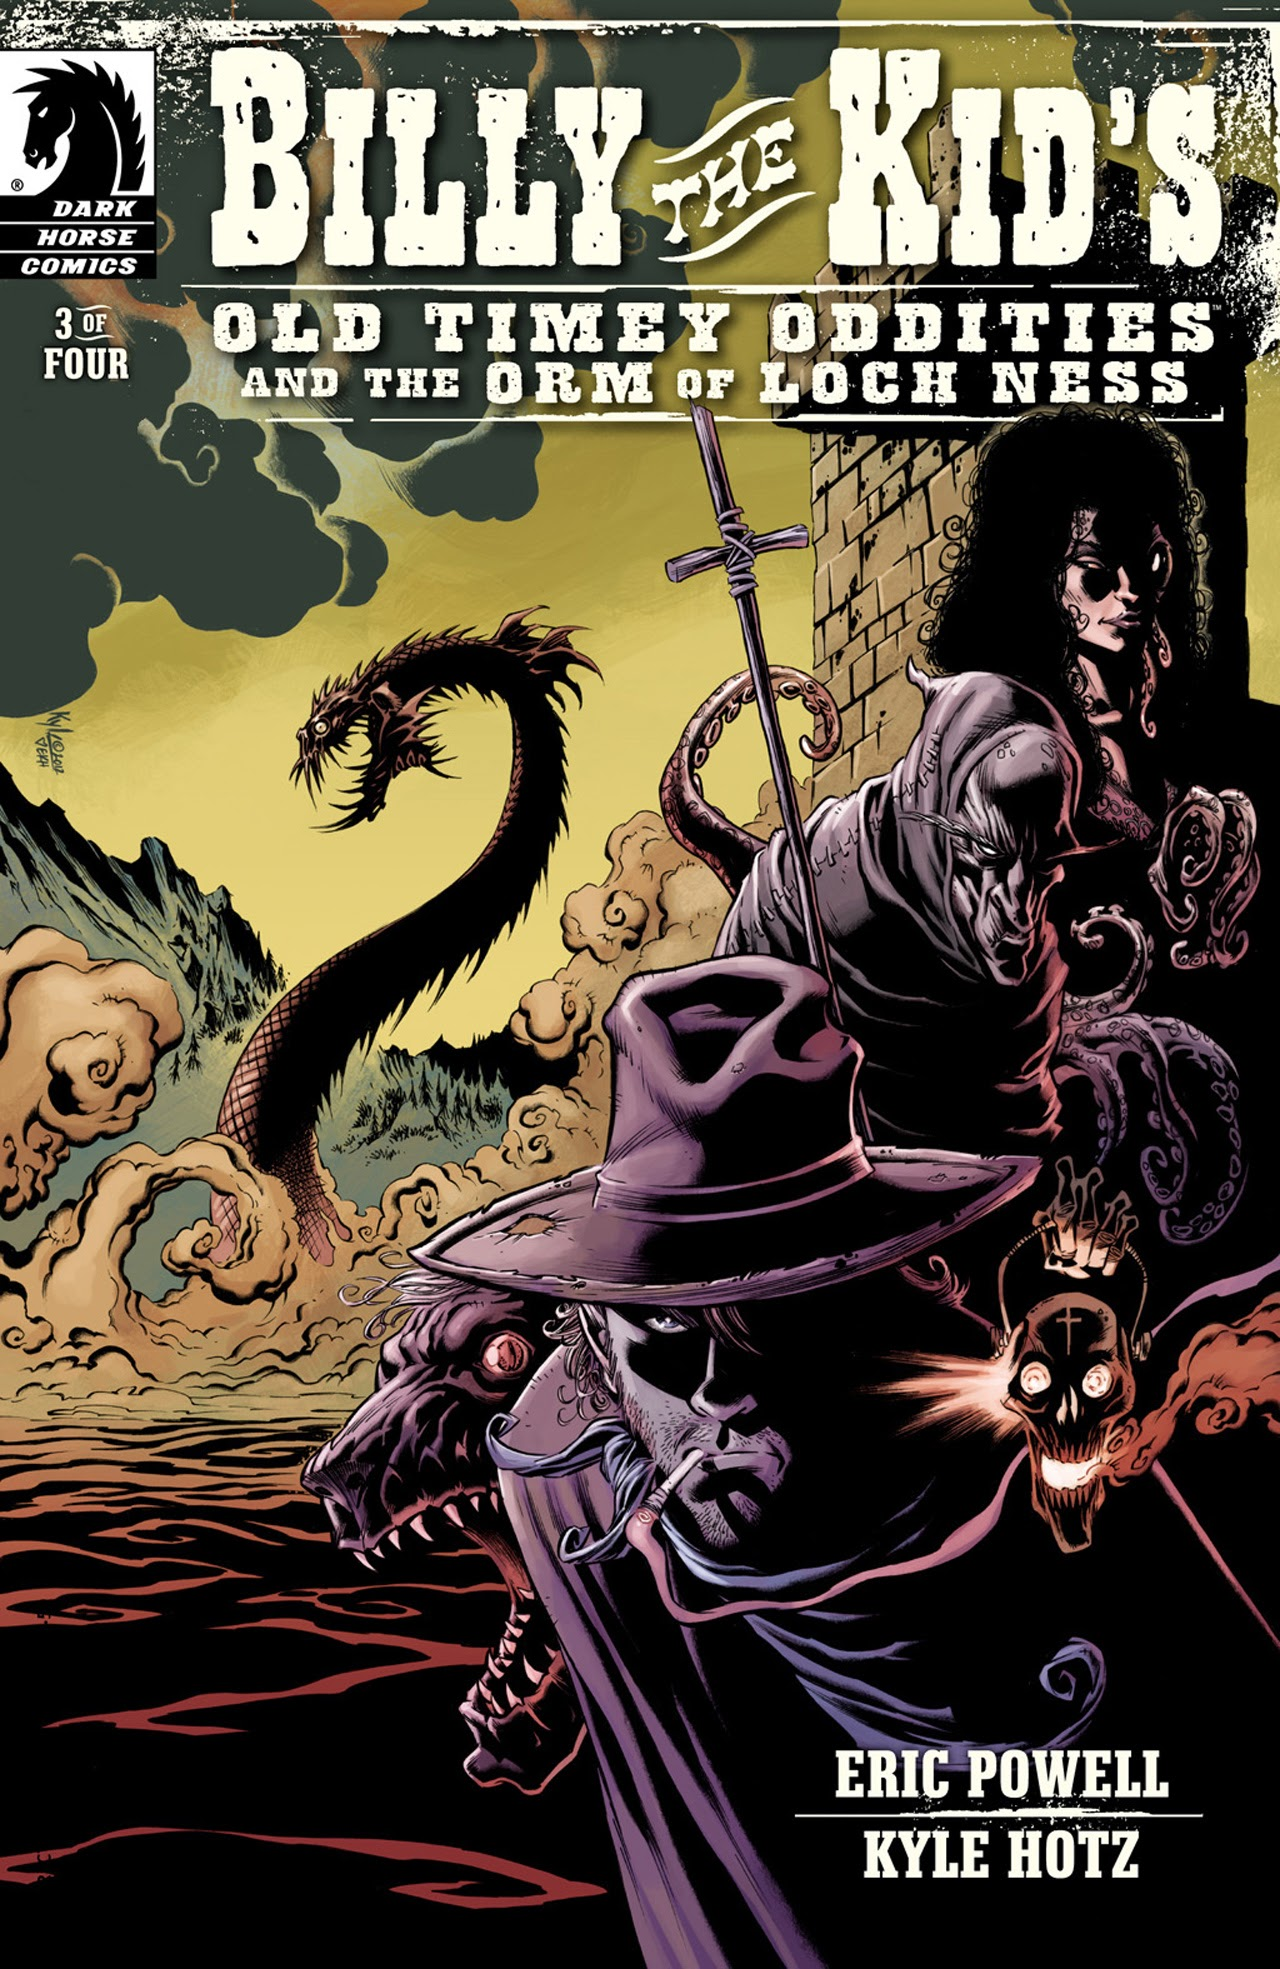 Read online Billy the Kid's Old Timey Oddities and the Orm of Loch Ness comic -  Issue #3 - 1